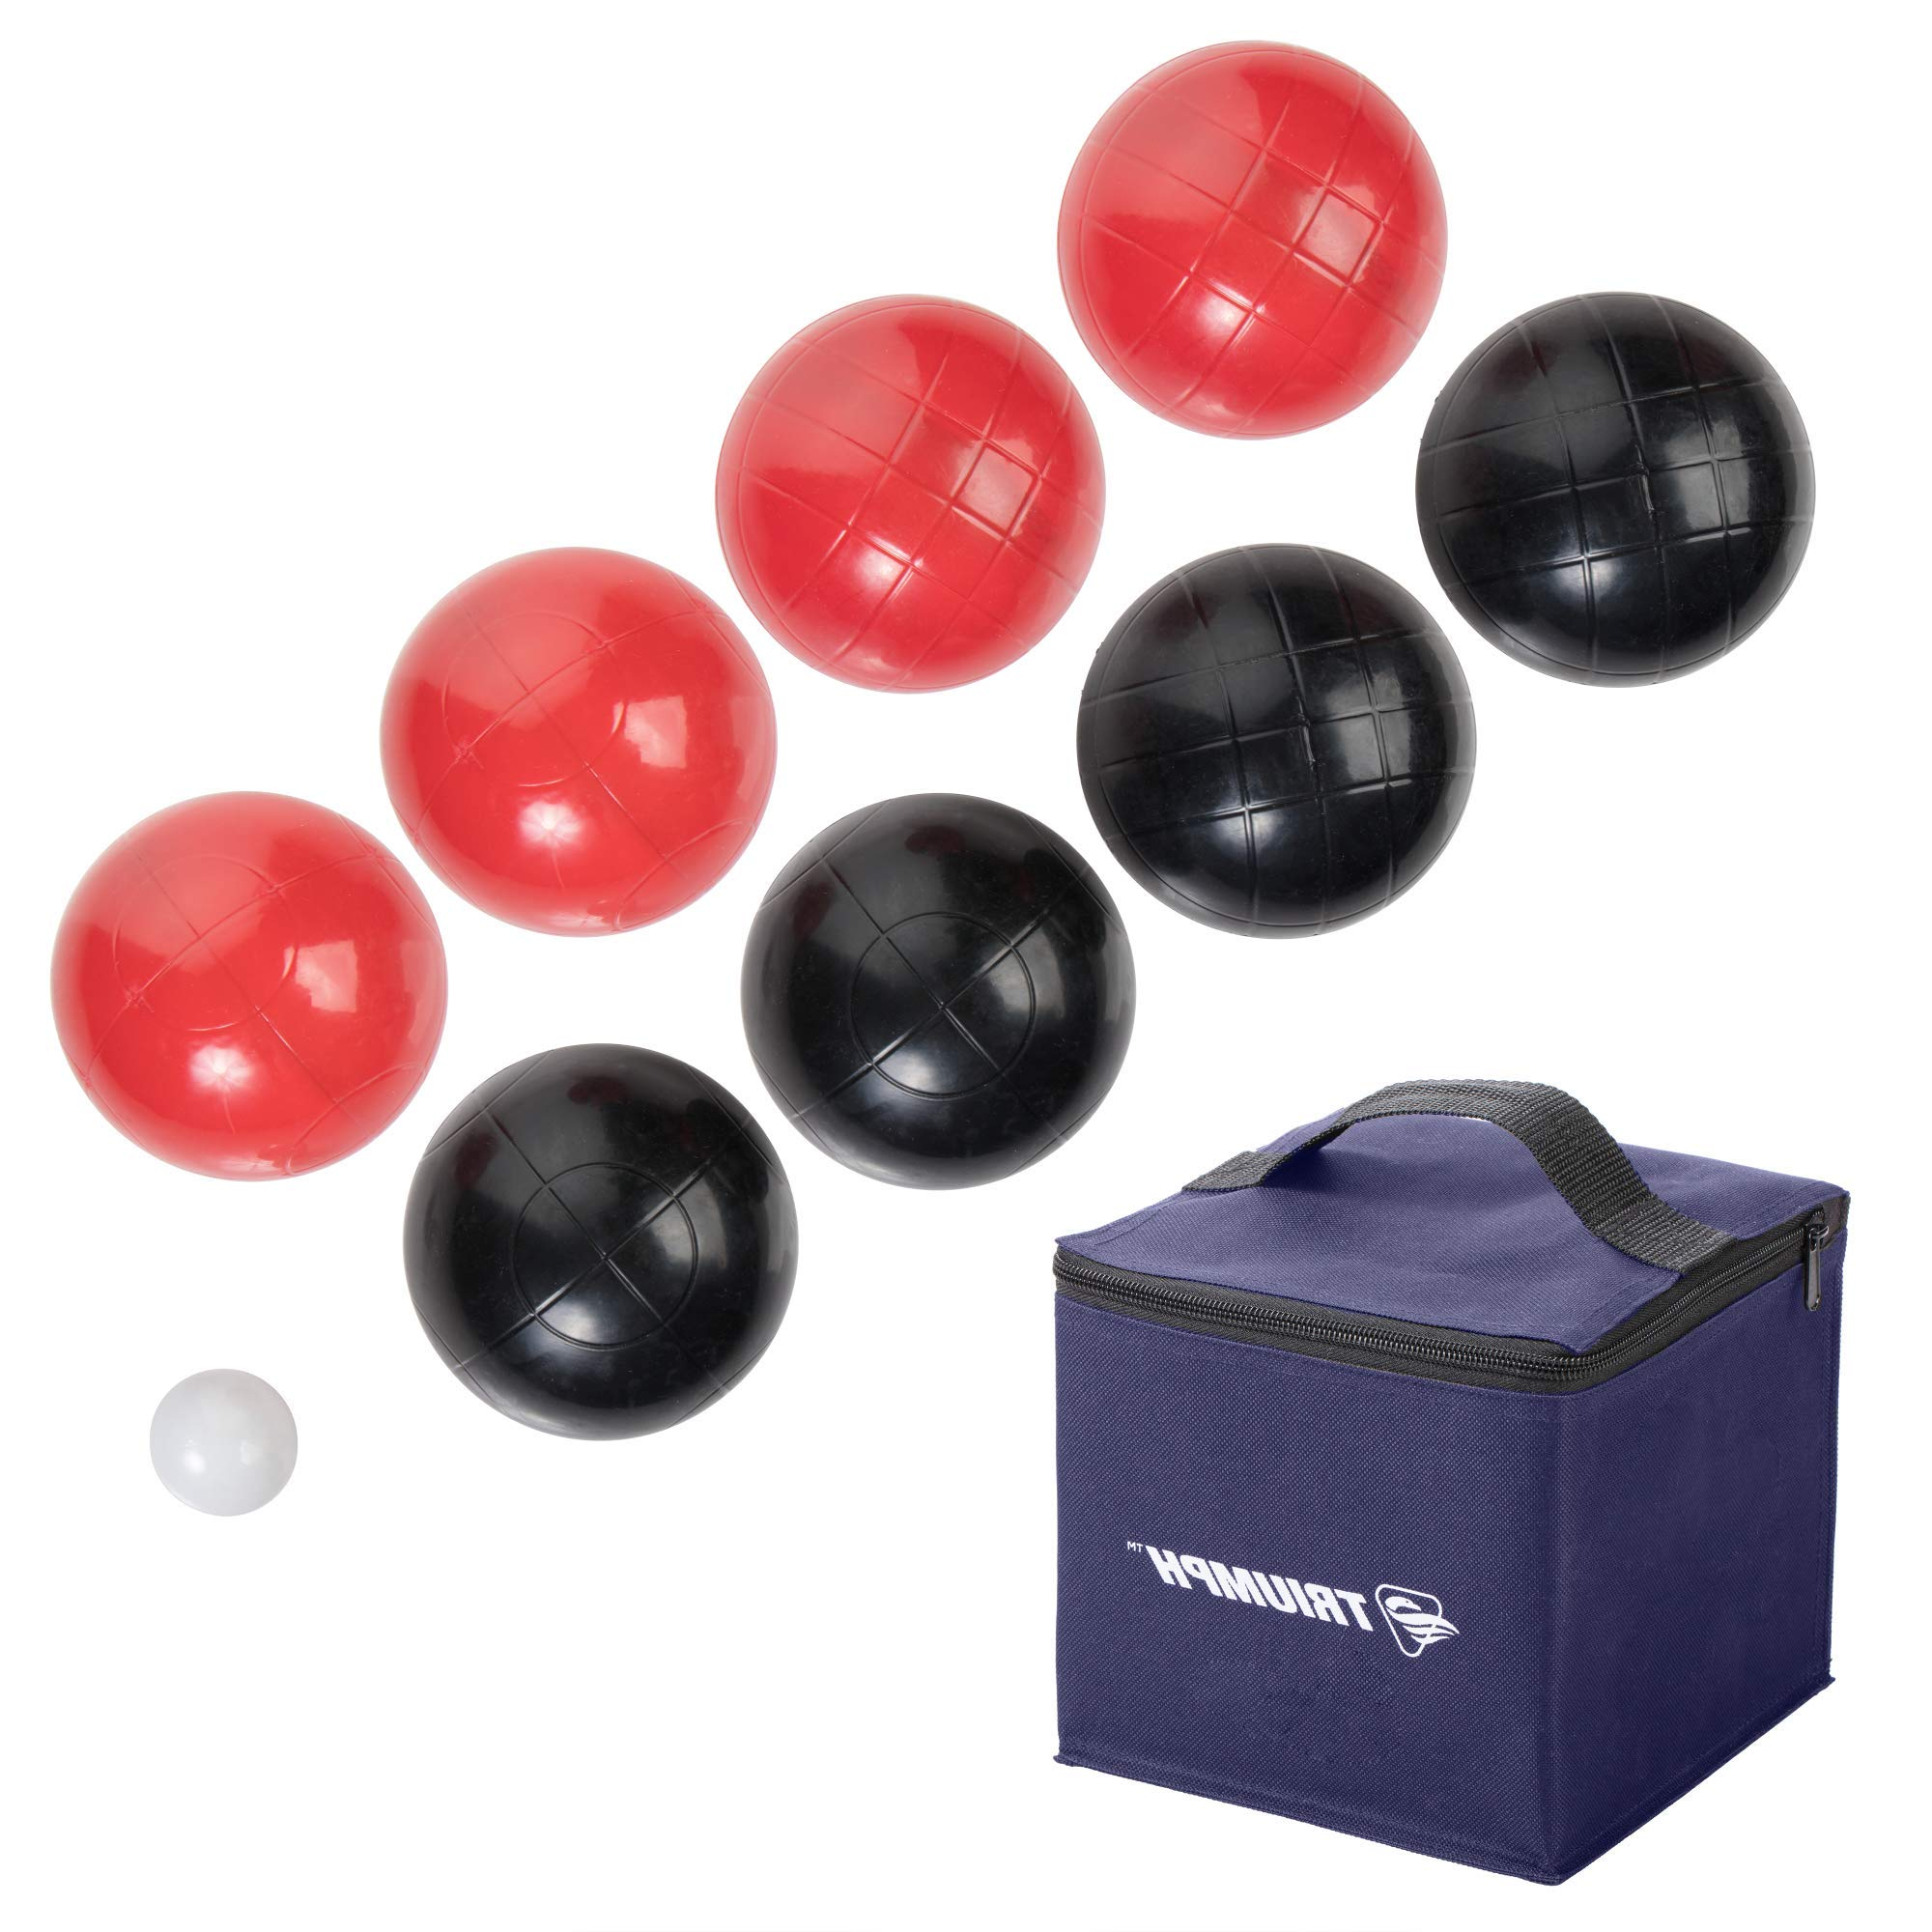 HealthyBells Recreational Outdoor Bocce Ball Set Includes 8 Bocce Balls, Jack, and Sports Carry Bag